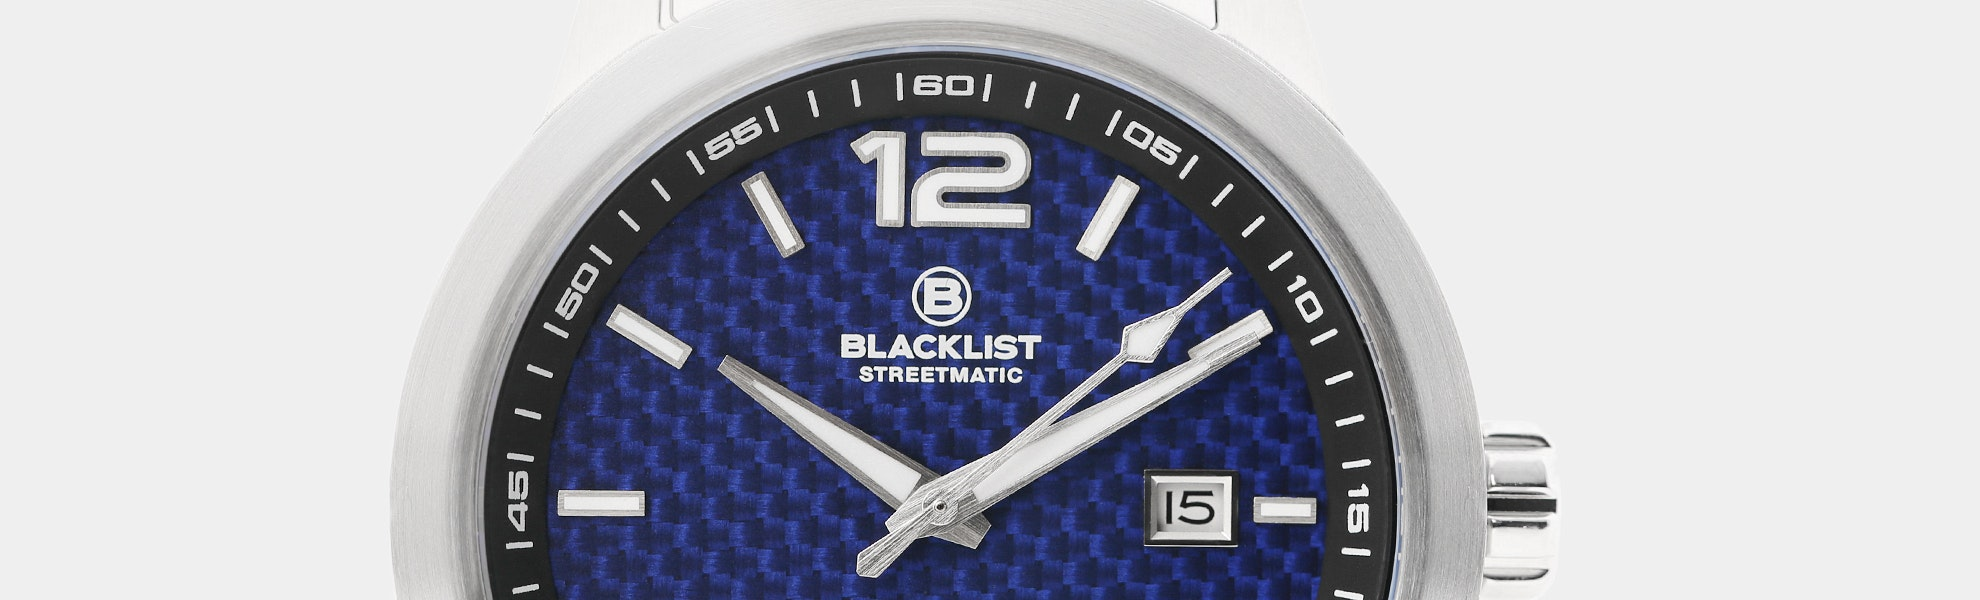 Blacklist Streetmatic Automatic Watch